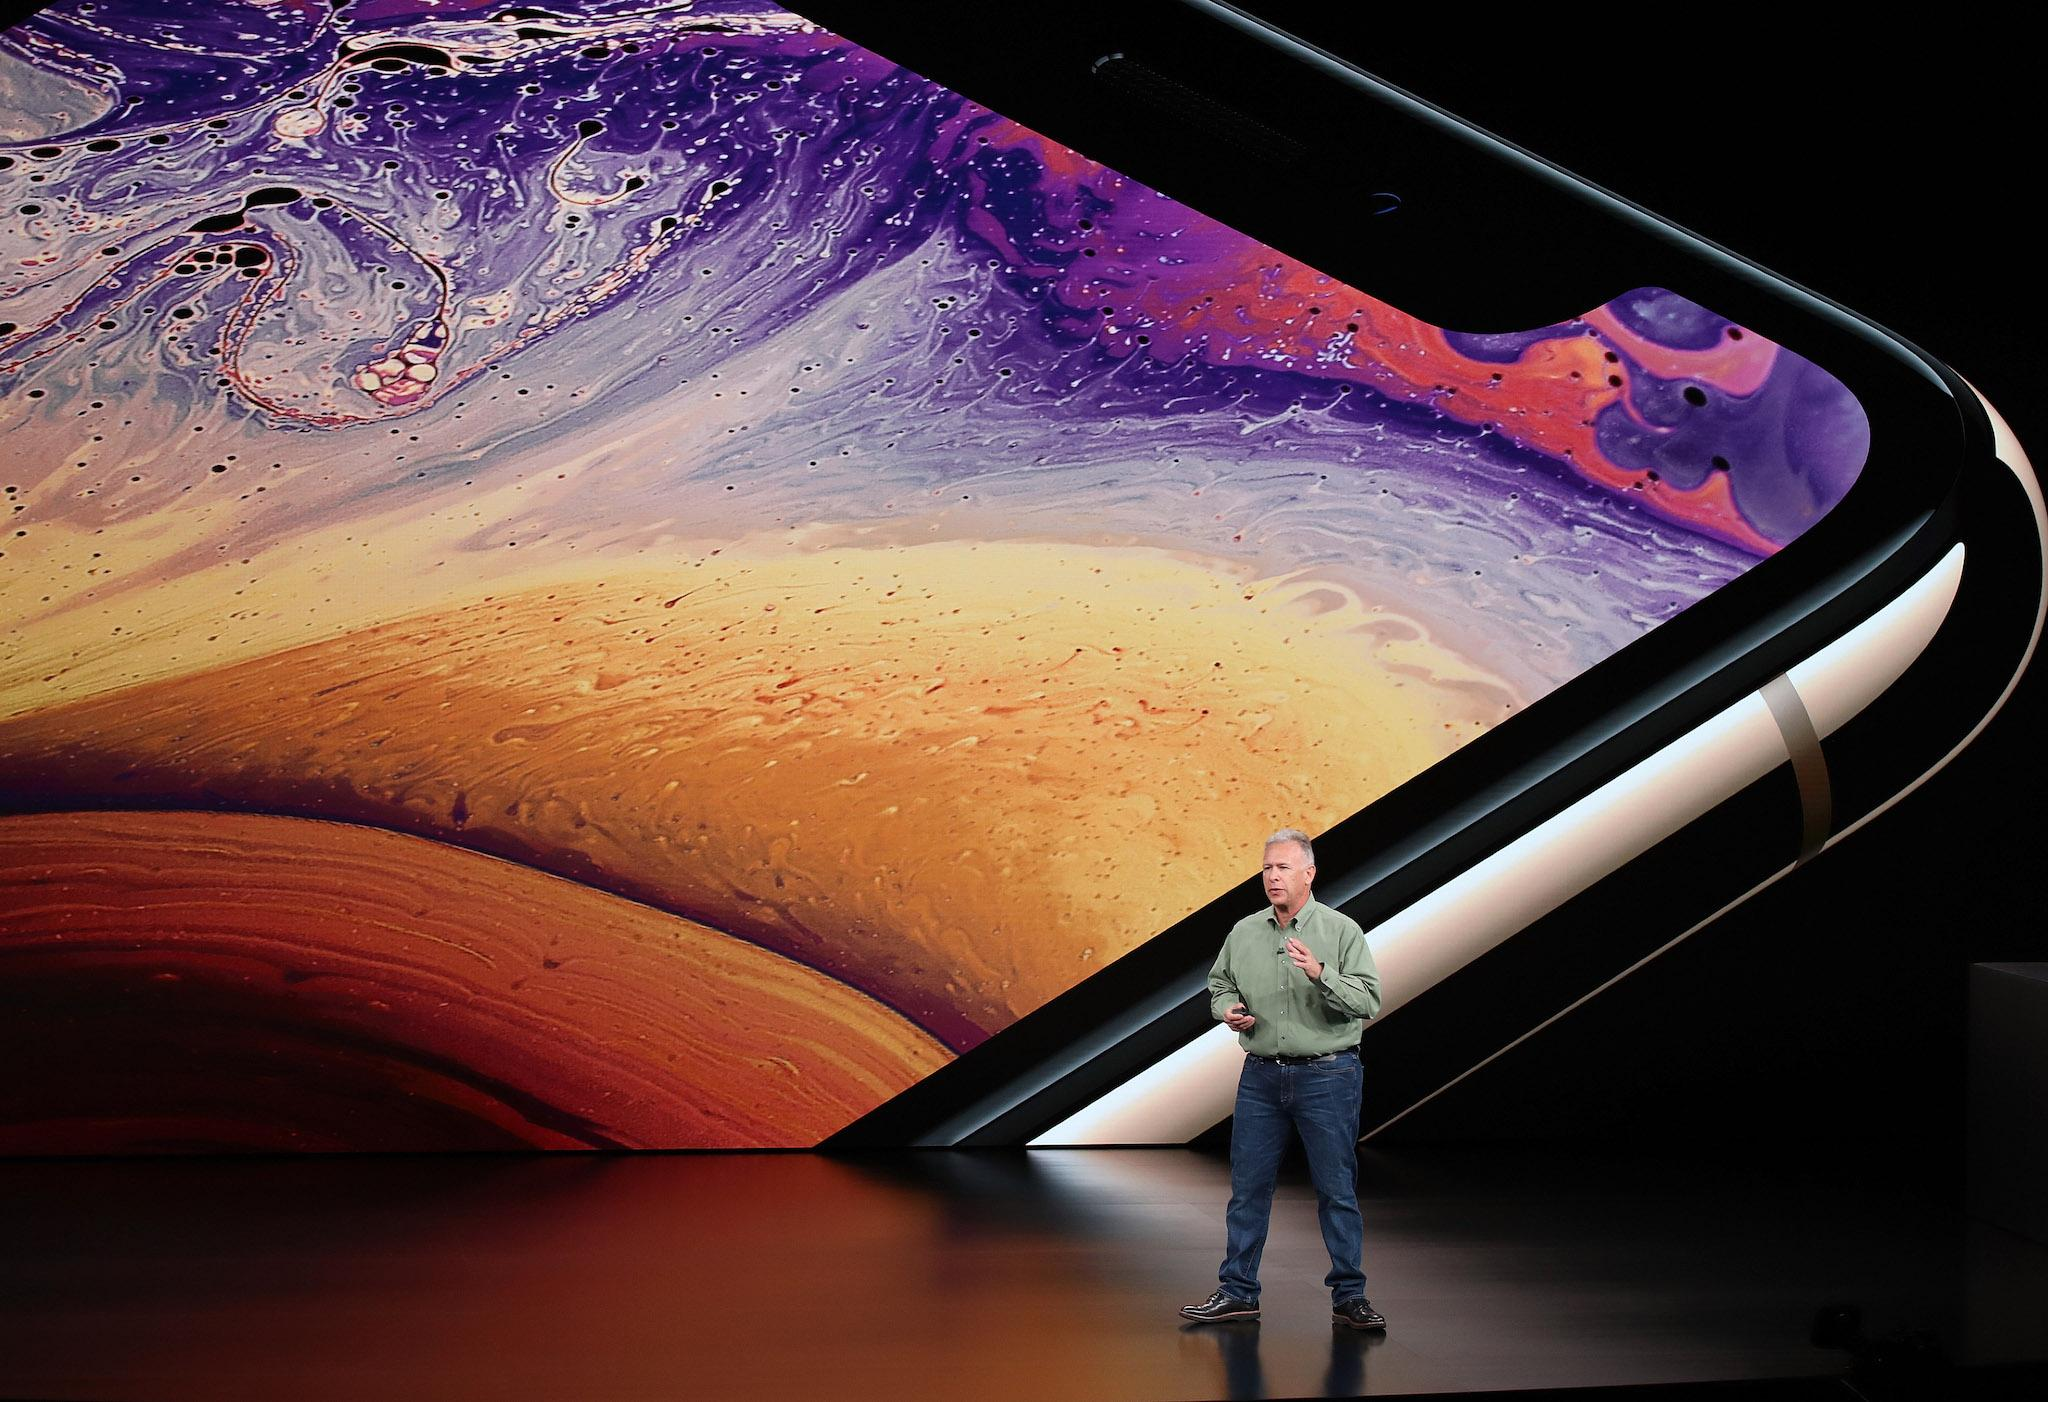 iOS 13: iPhone and iPad users warned against installing new Apple